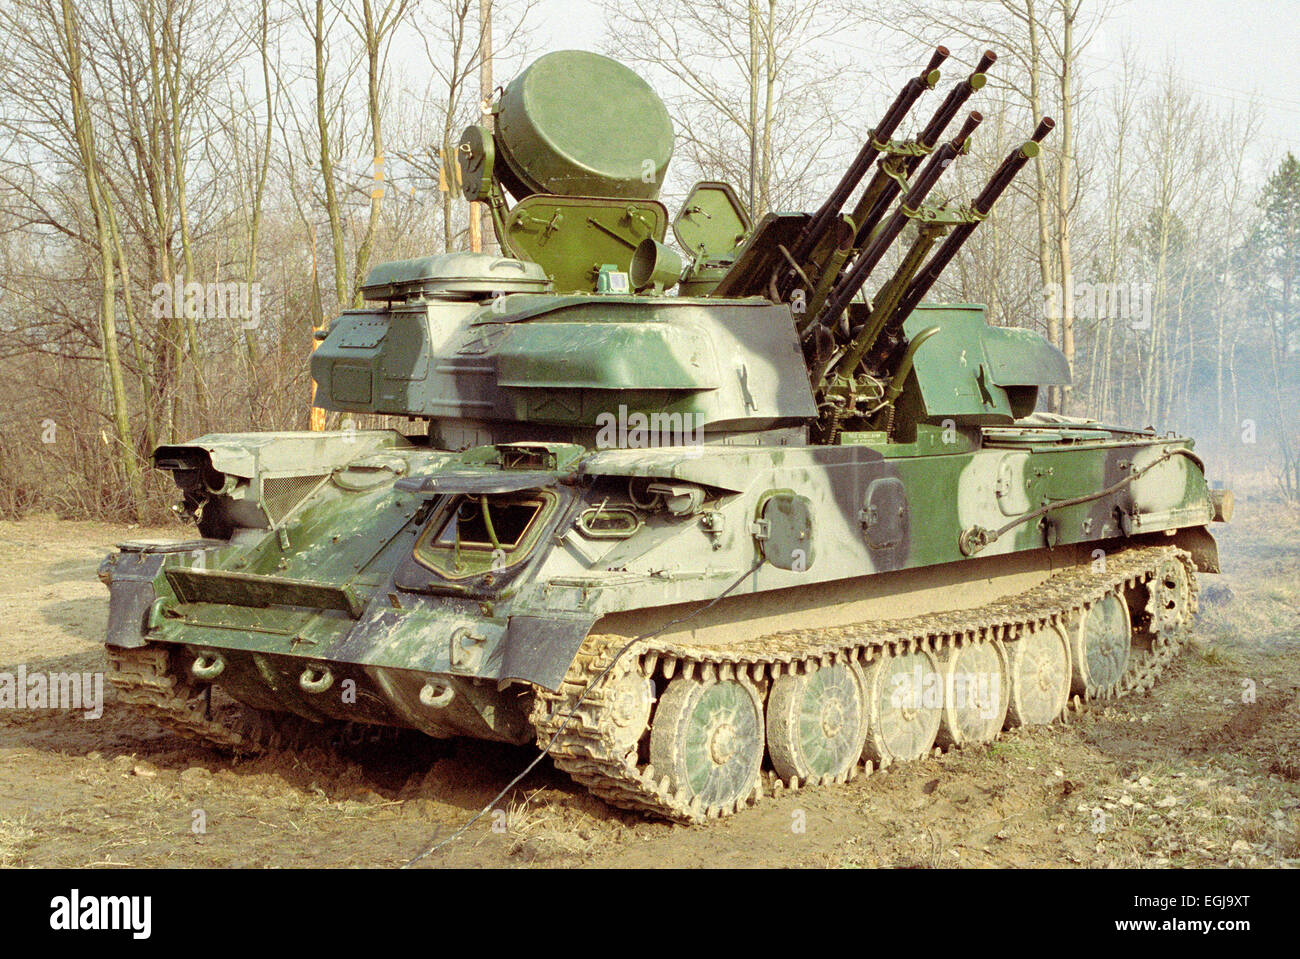 "Self Propelled Cart >> The ZSU-23-4 ""Shilka"" is a lightly armored, self-propelled ..."